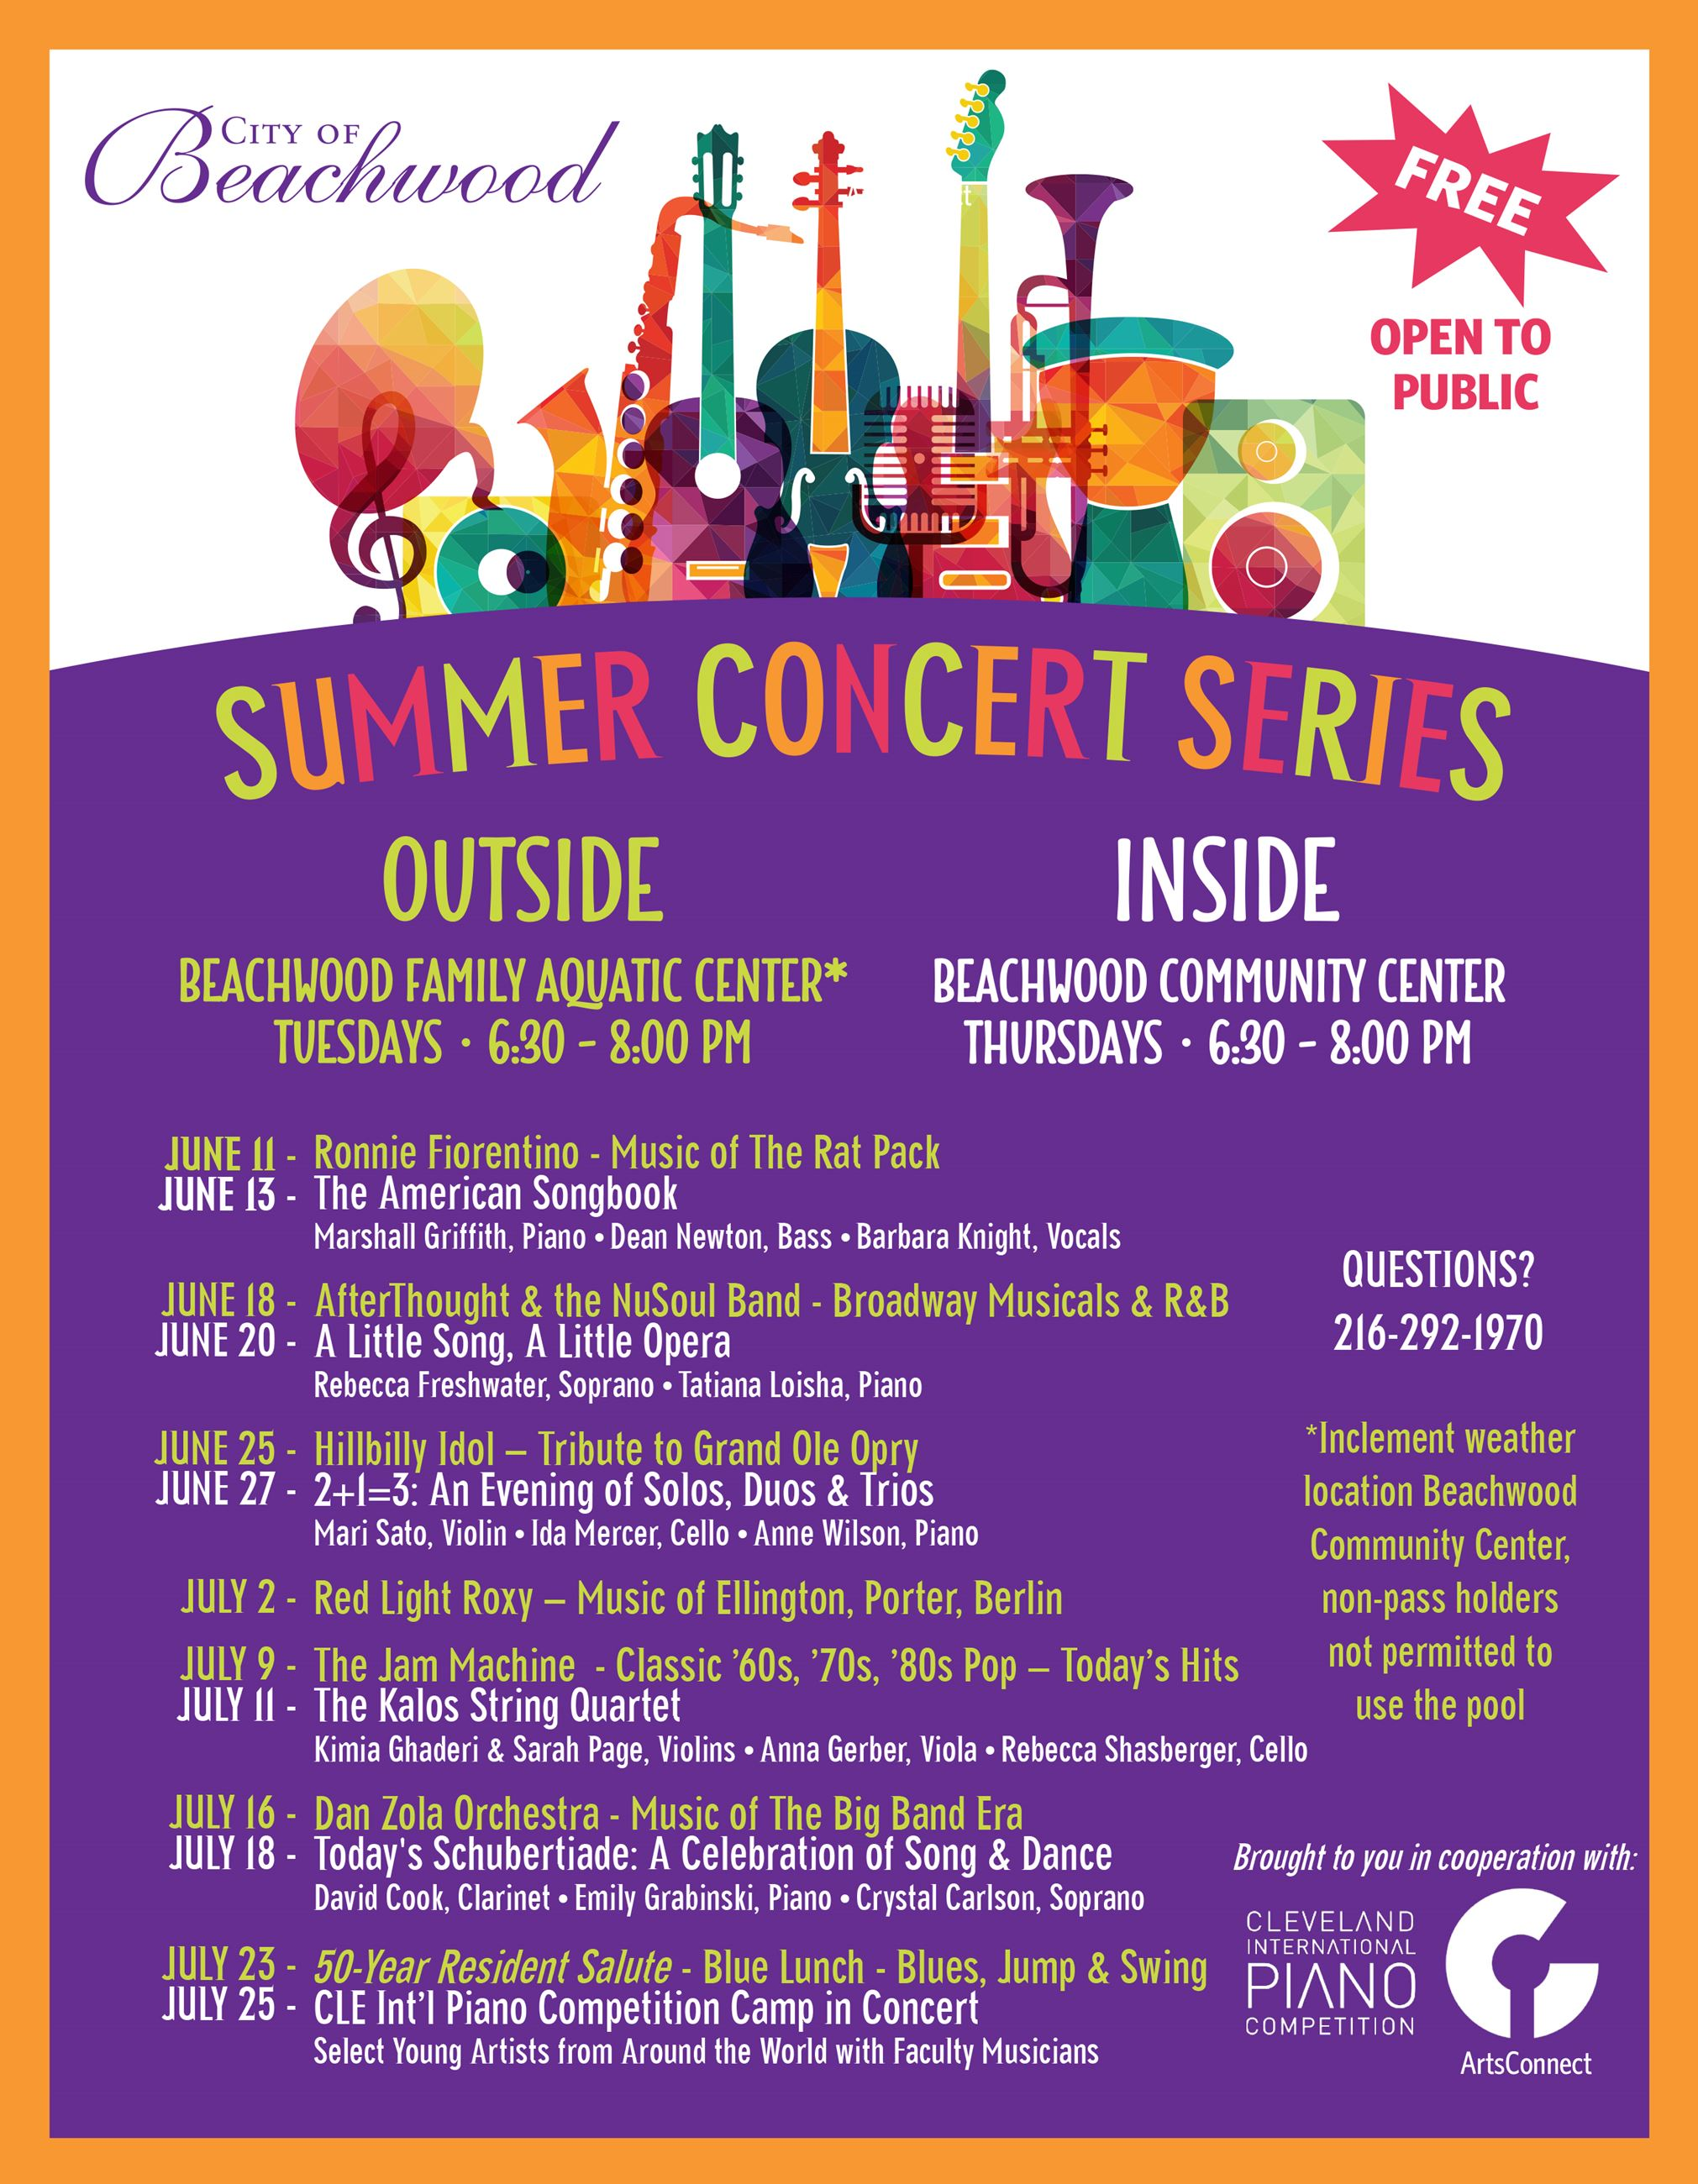 Summer Concert Series schedule. Call 216-292-1970 for more information.